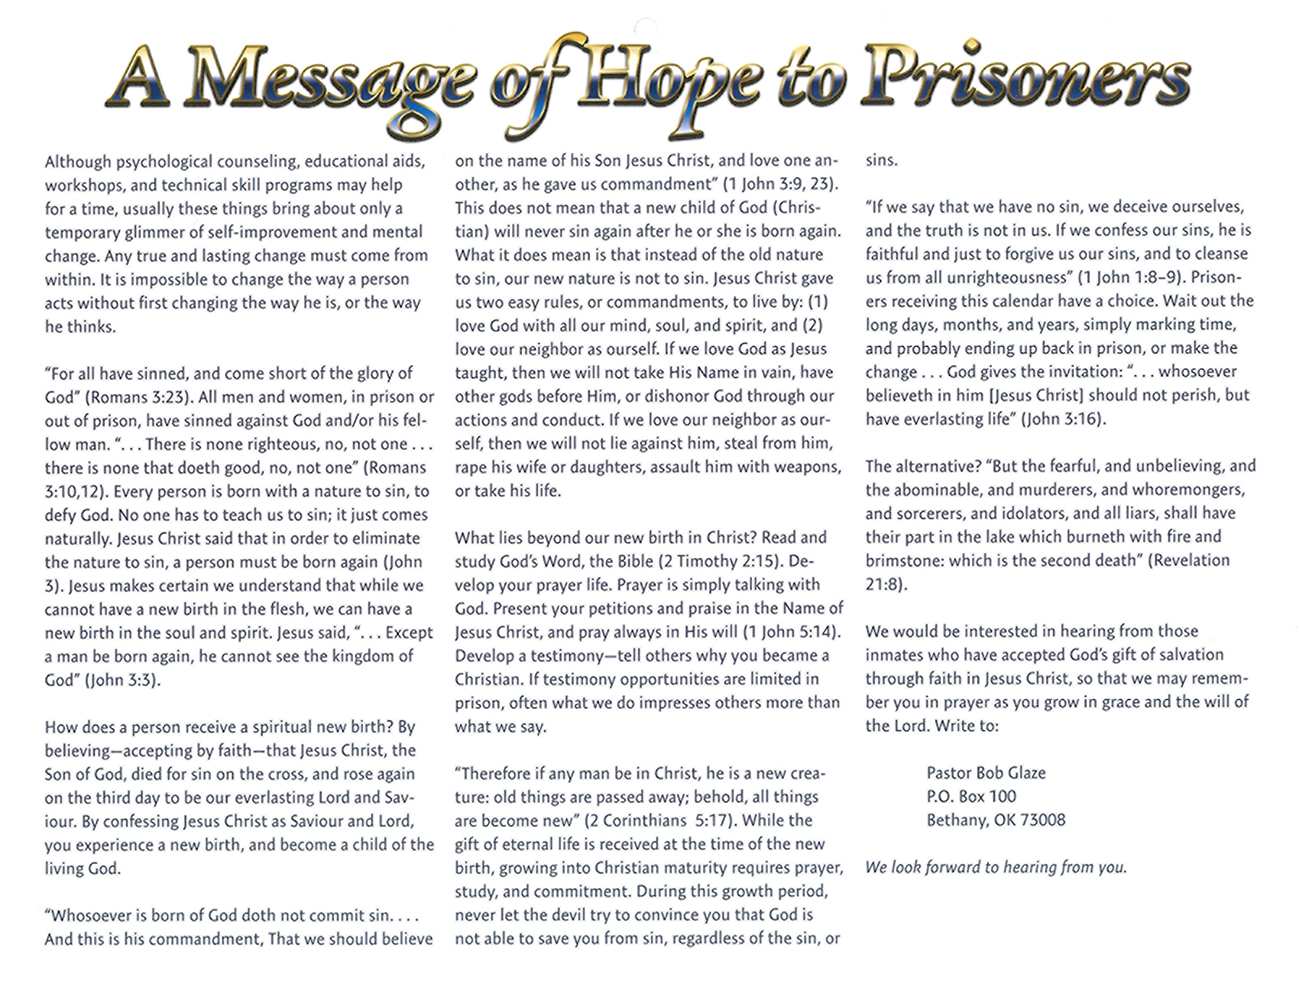 2016 Prophecy Calendar: A Message of Hope to Prisoners